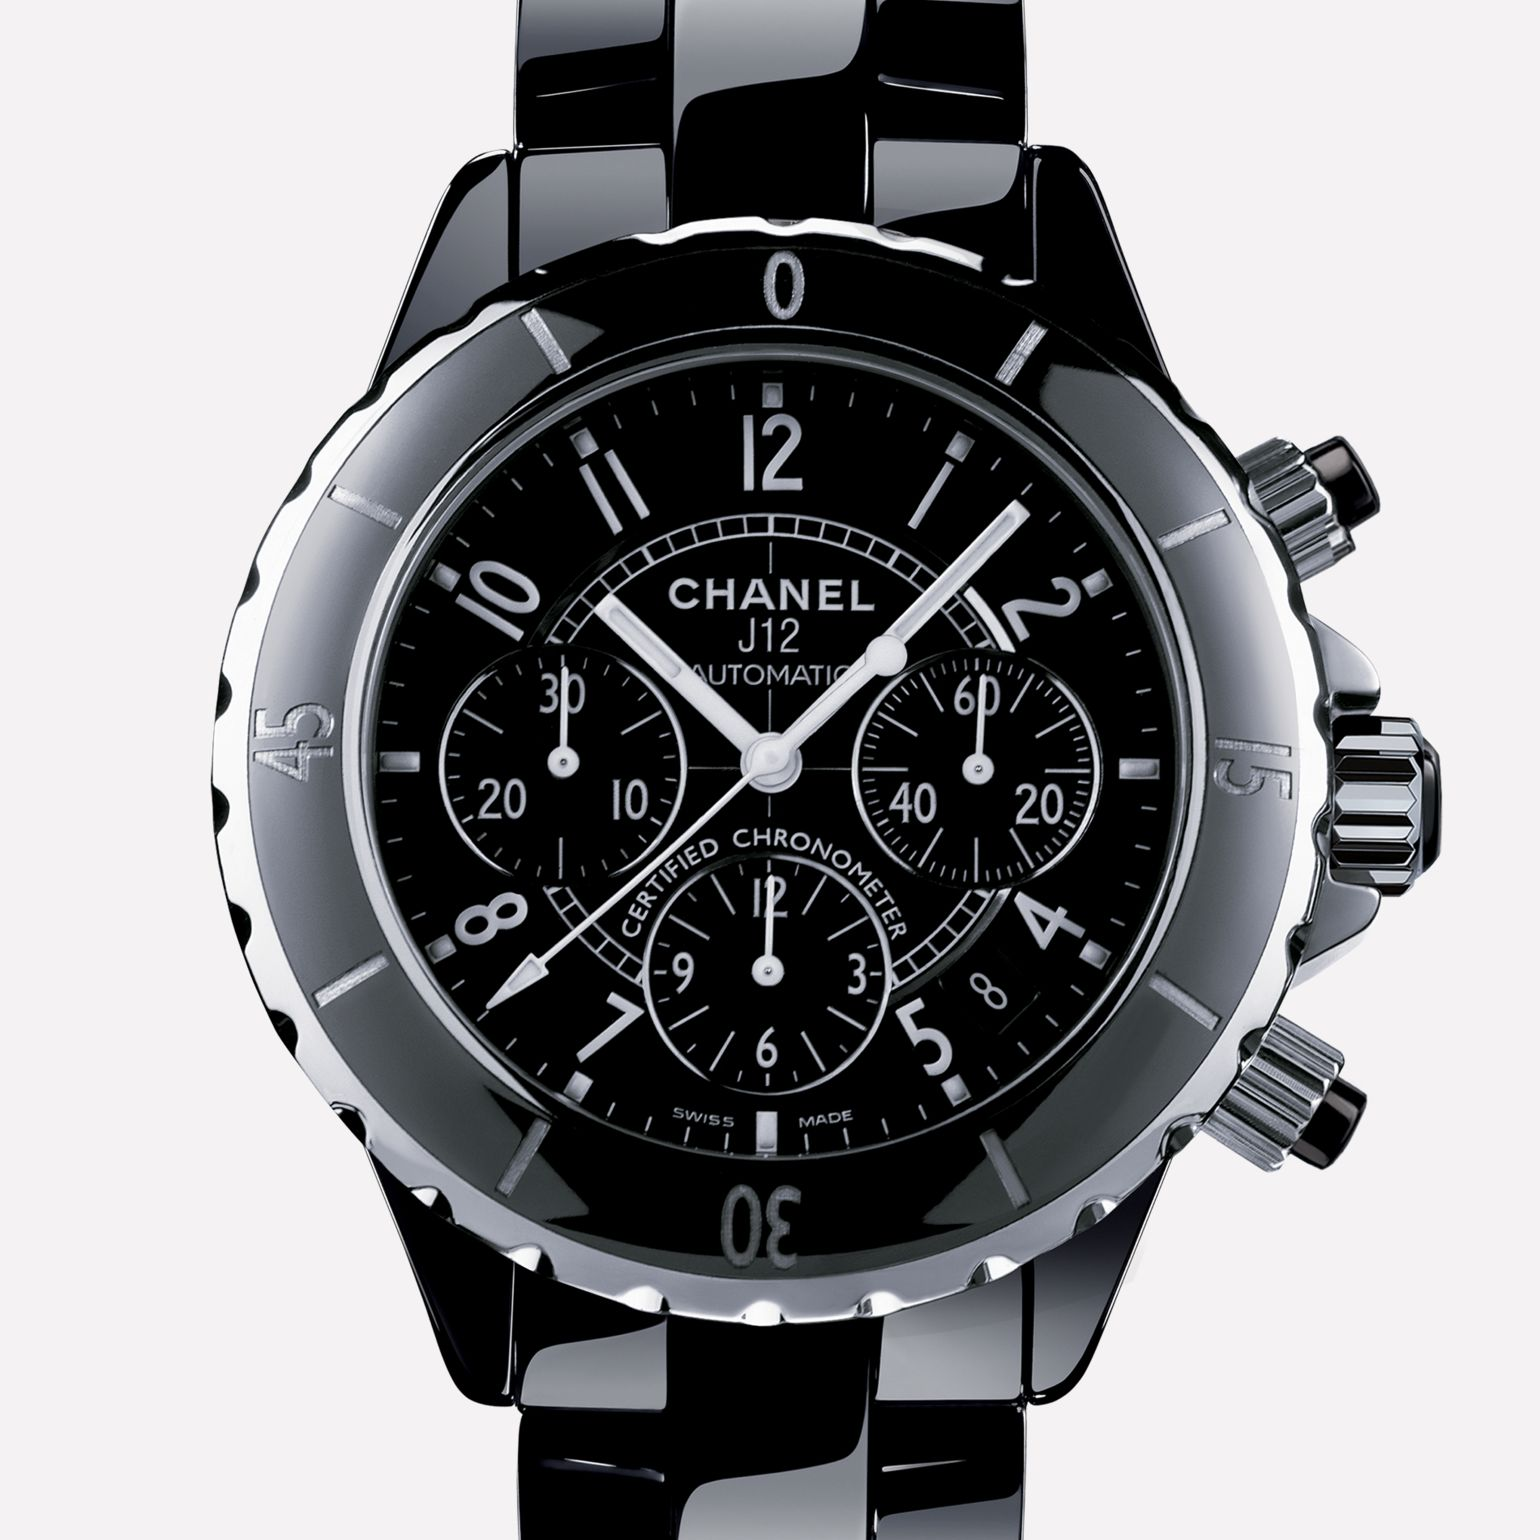 J12 Chronograph Watch Black highly-resistant ceramic and steel